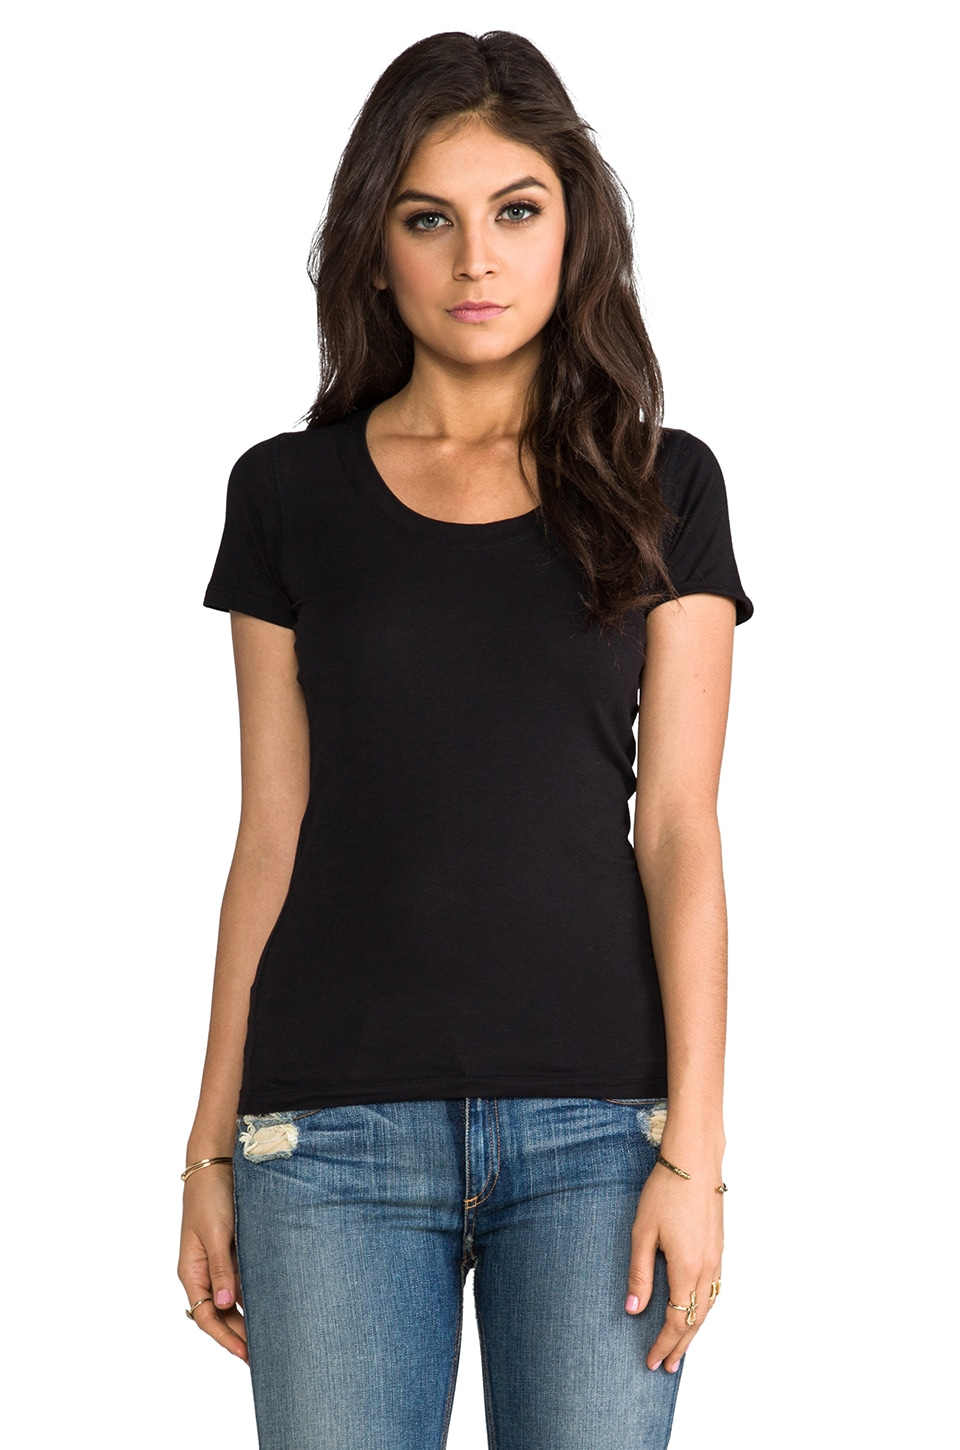 Theory Juin 2 Tee in Black